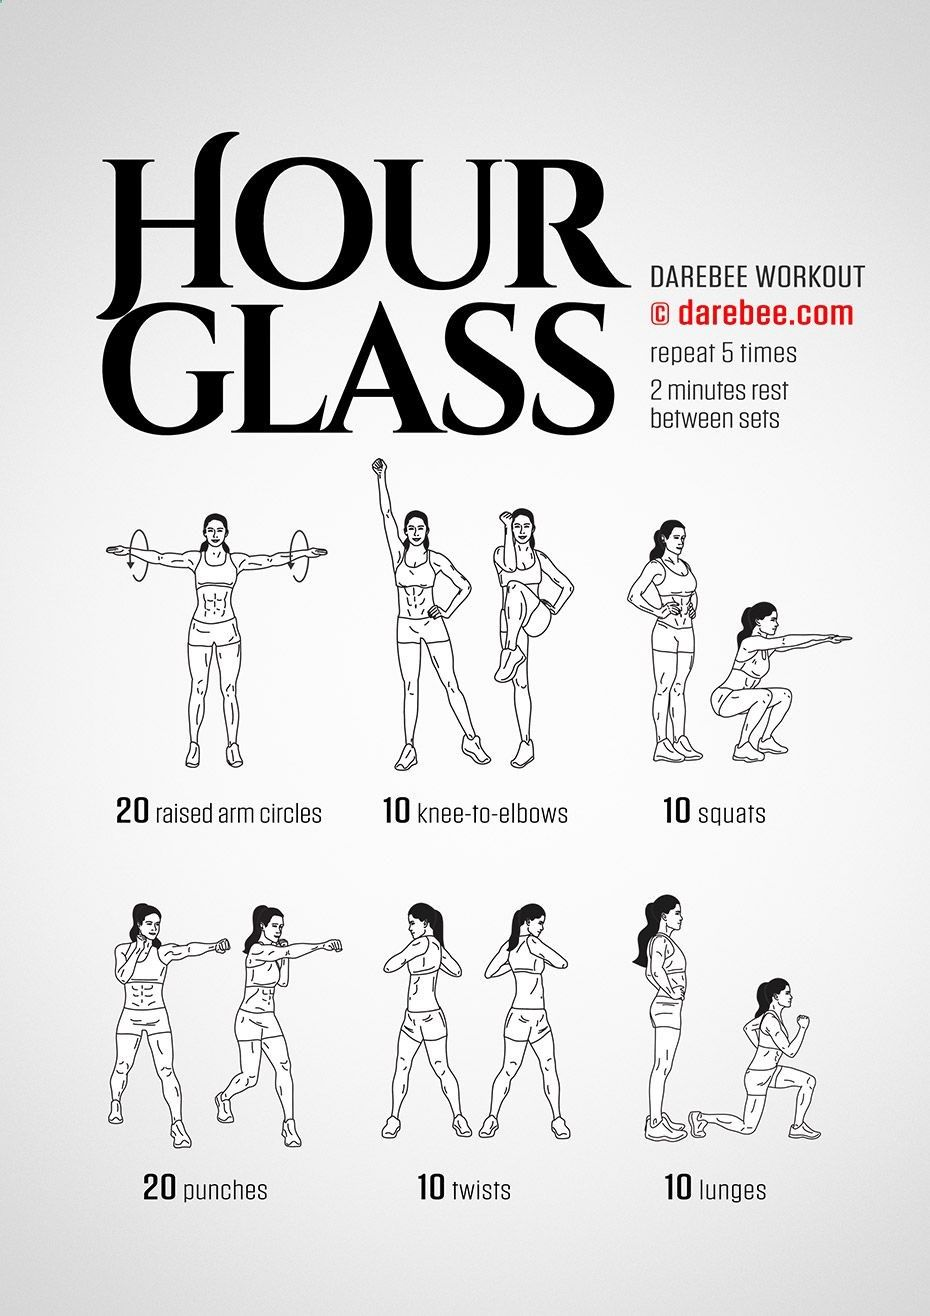 Pin By Kaitlin Bruder On Fitness Pinterest Workout And Simple Circuit Training Is Perfect For When Your Are Short Time Recovering From An Injury Or A Hard Just Getting Into Cardio Routines